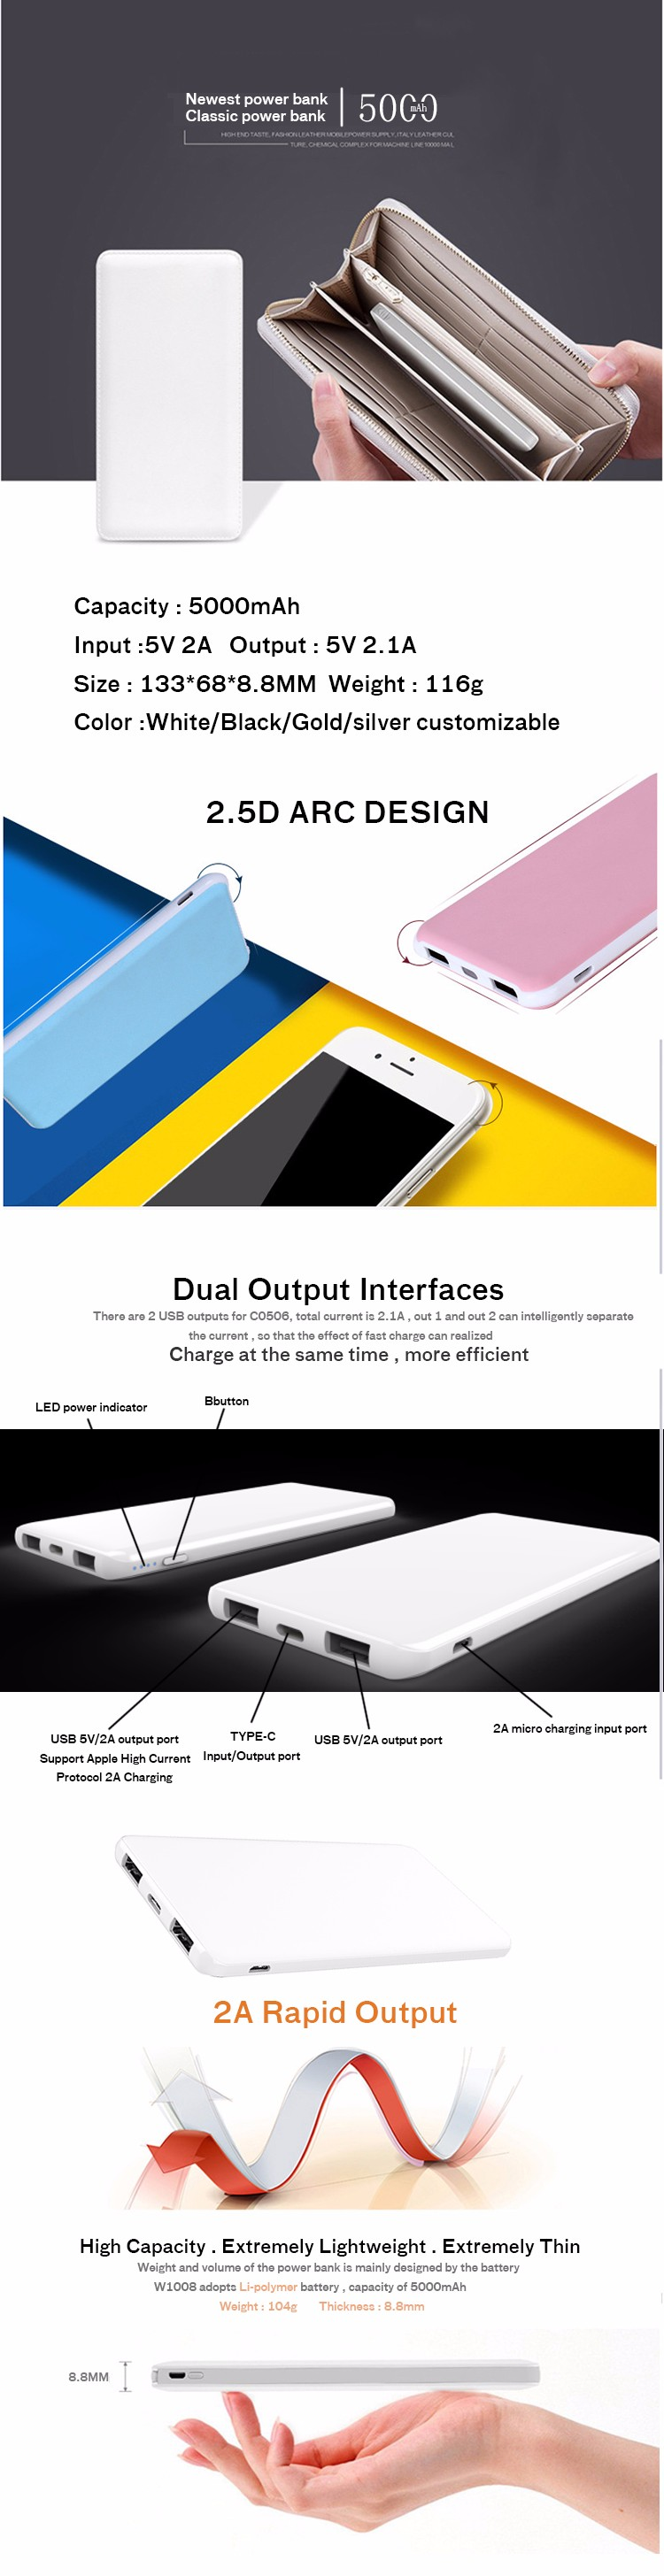 External new battery power bank 5000mah comprtitive price flat power bank